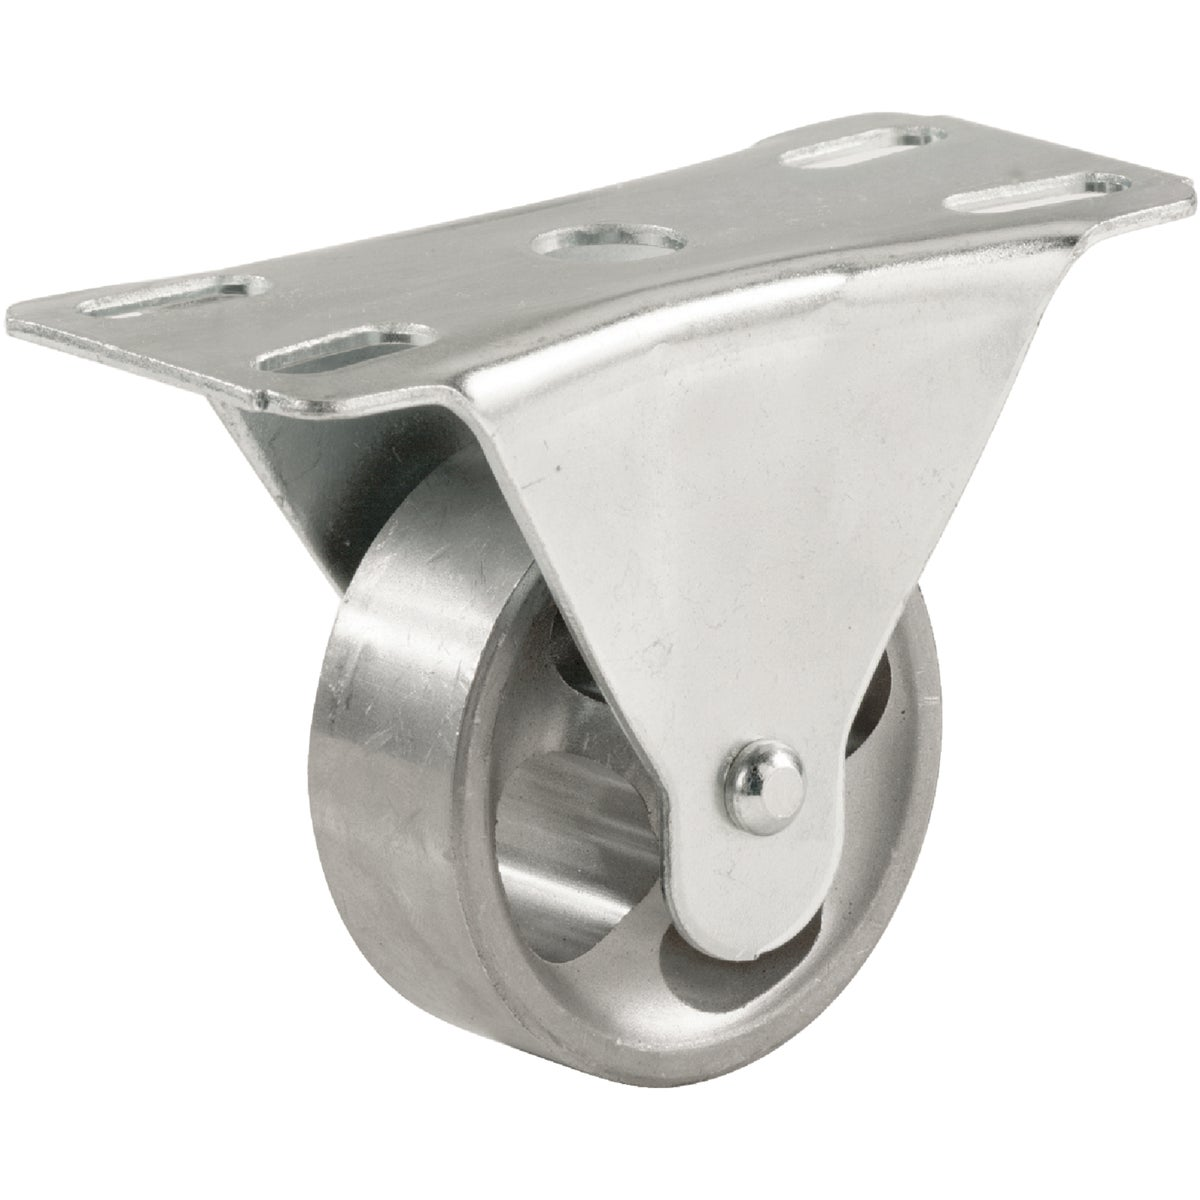 "2"" RIG CAST IRON CASTER - 9182 by Shepherd Hardware"